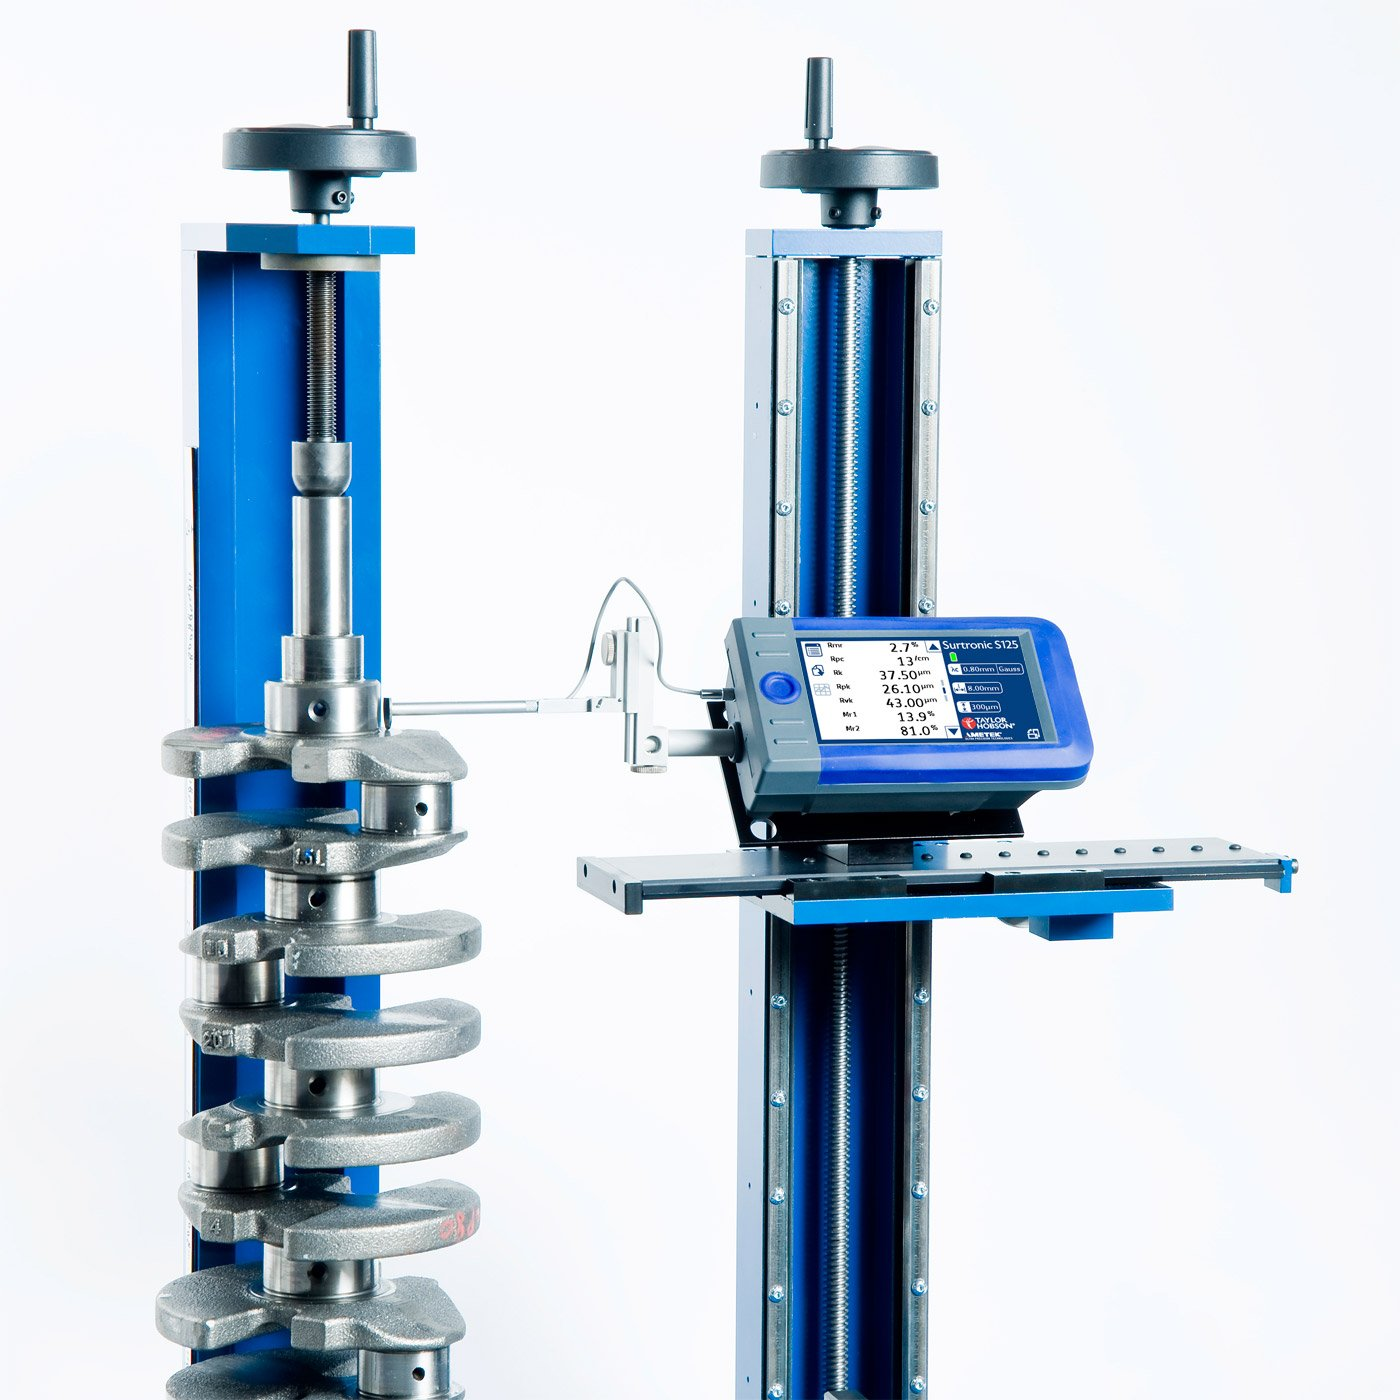 Surface roughness measurement equipment Surtronic s-100